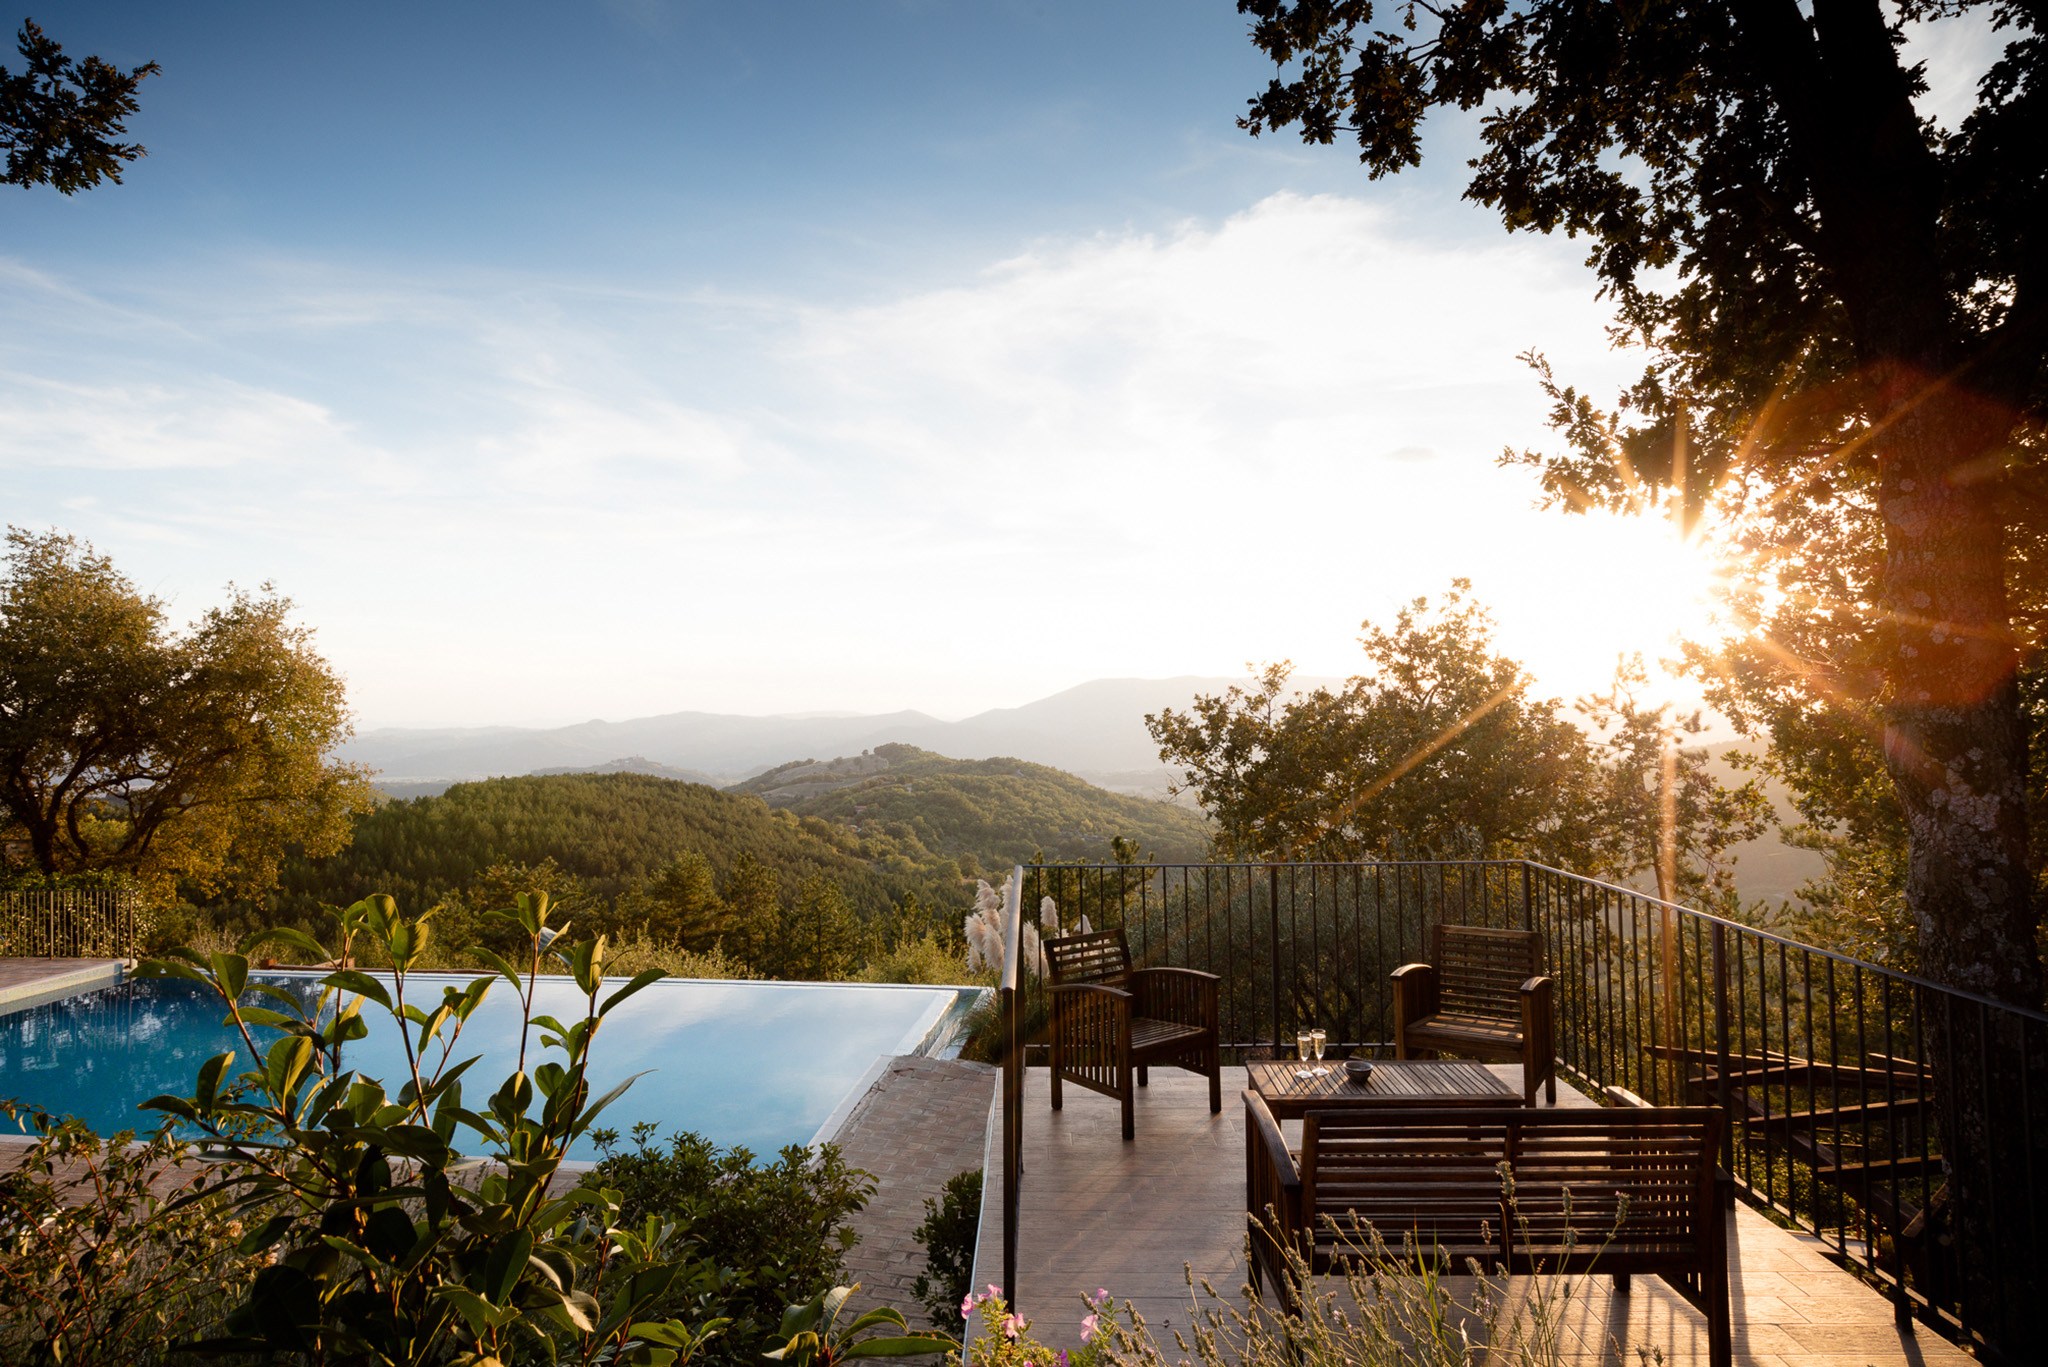 Luxury Vacation Property Photography - Jon Kempner Photography